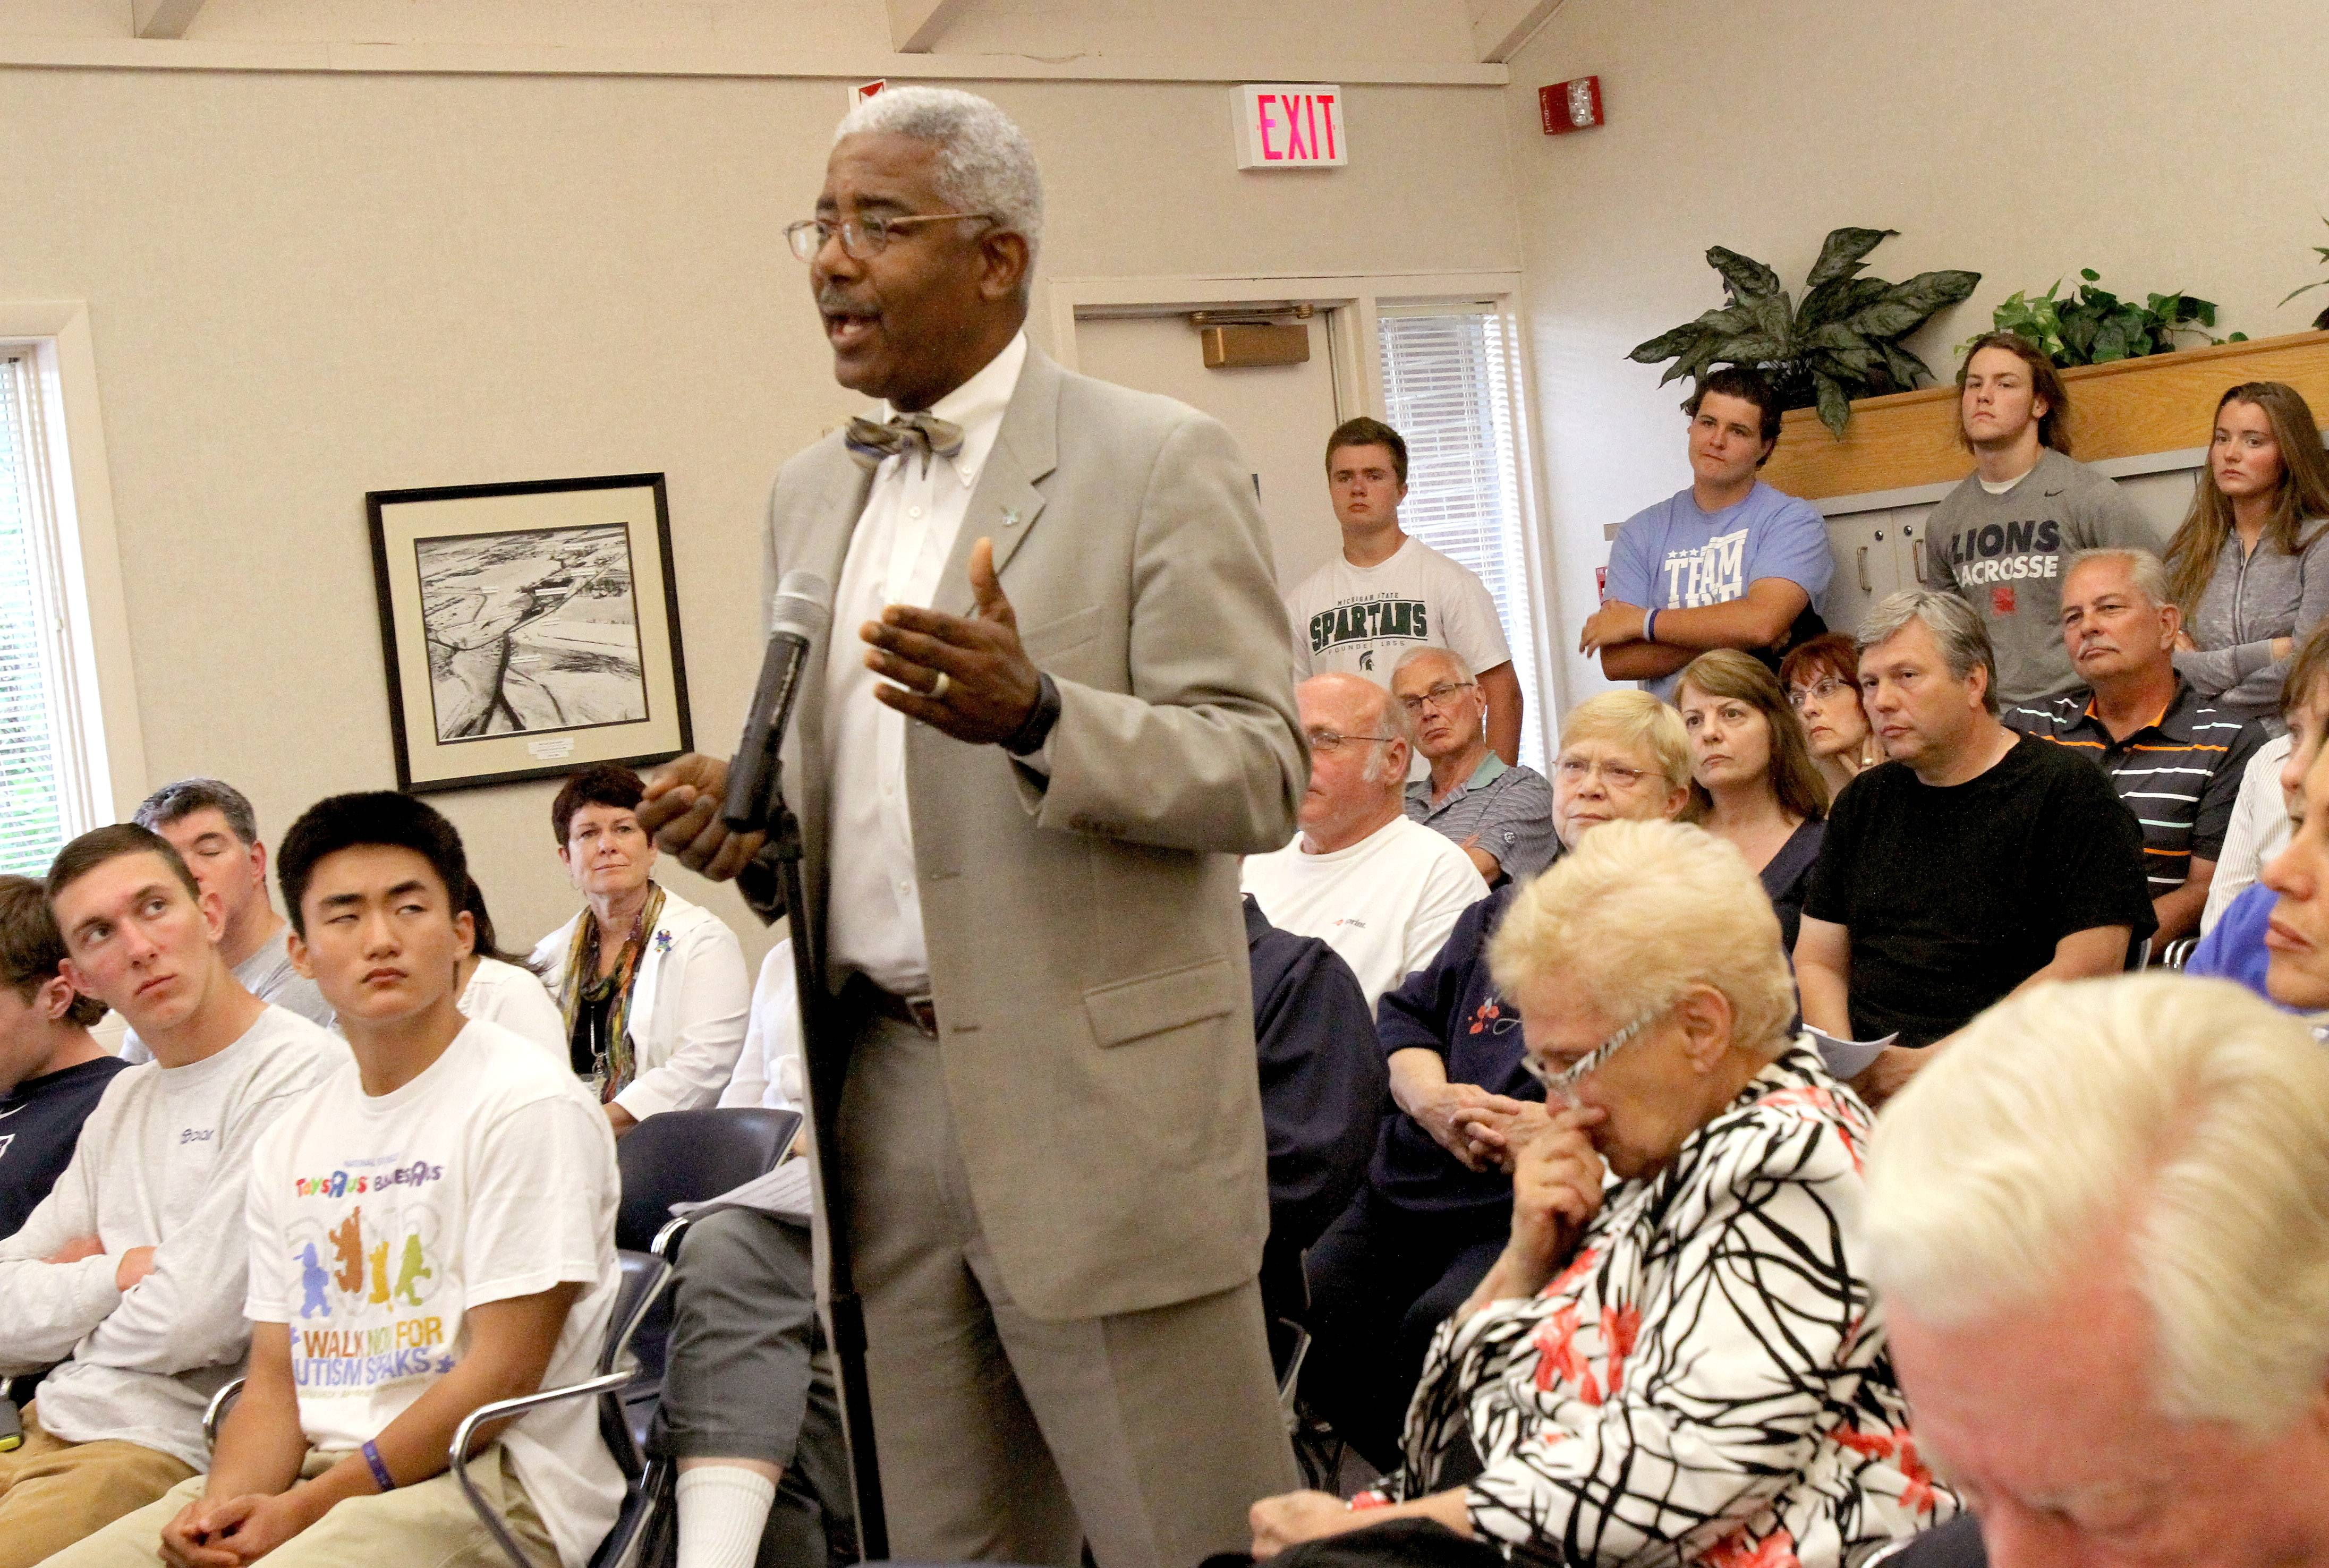 Shawn Jeffers, executive director of Little City, speaks to the Bloomingdale village board during its meeting Monday. Little City withdrew its application to create a group home at 116 Greenway Drive in Bloomingdale.